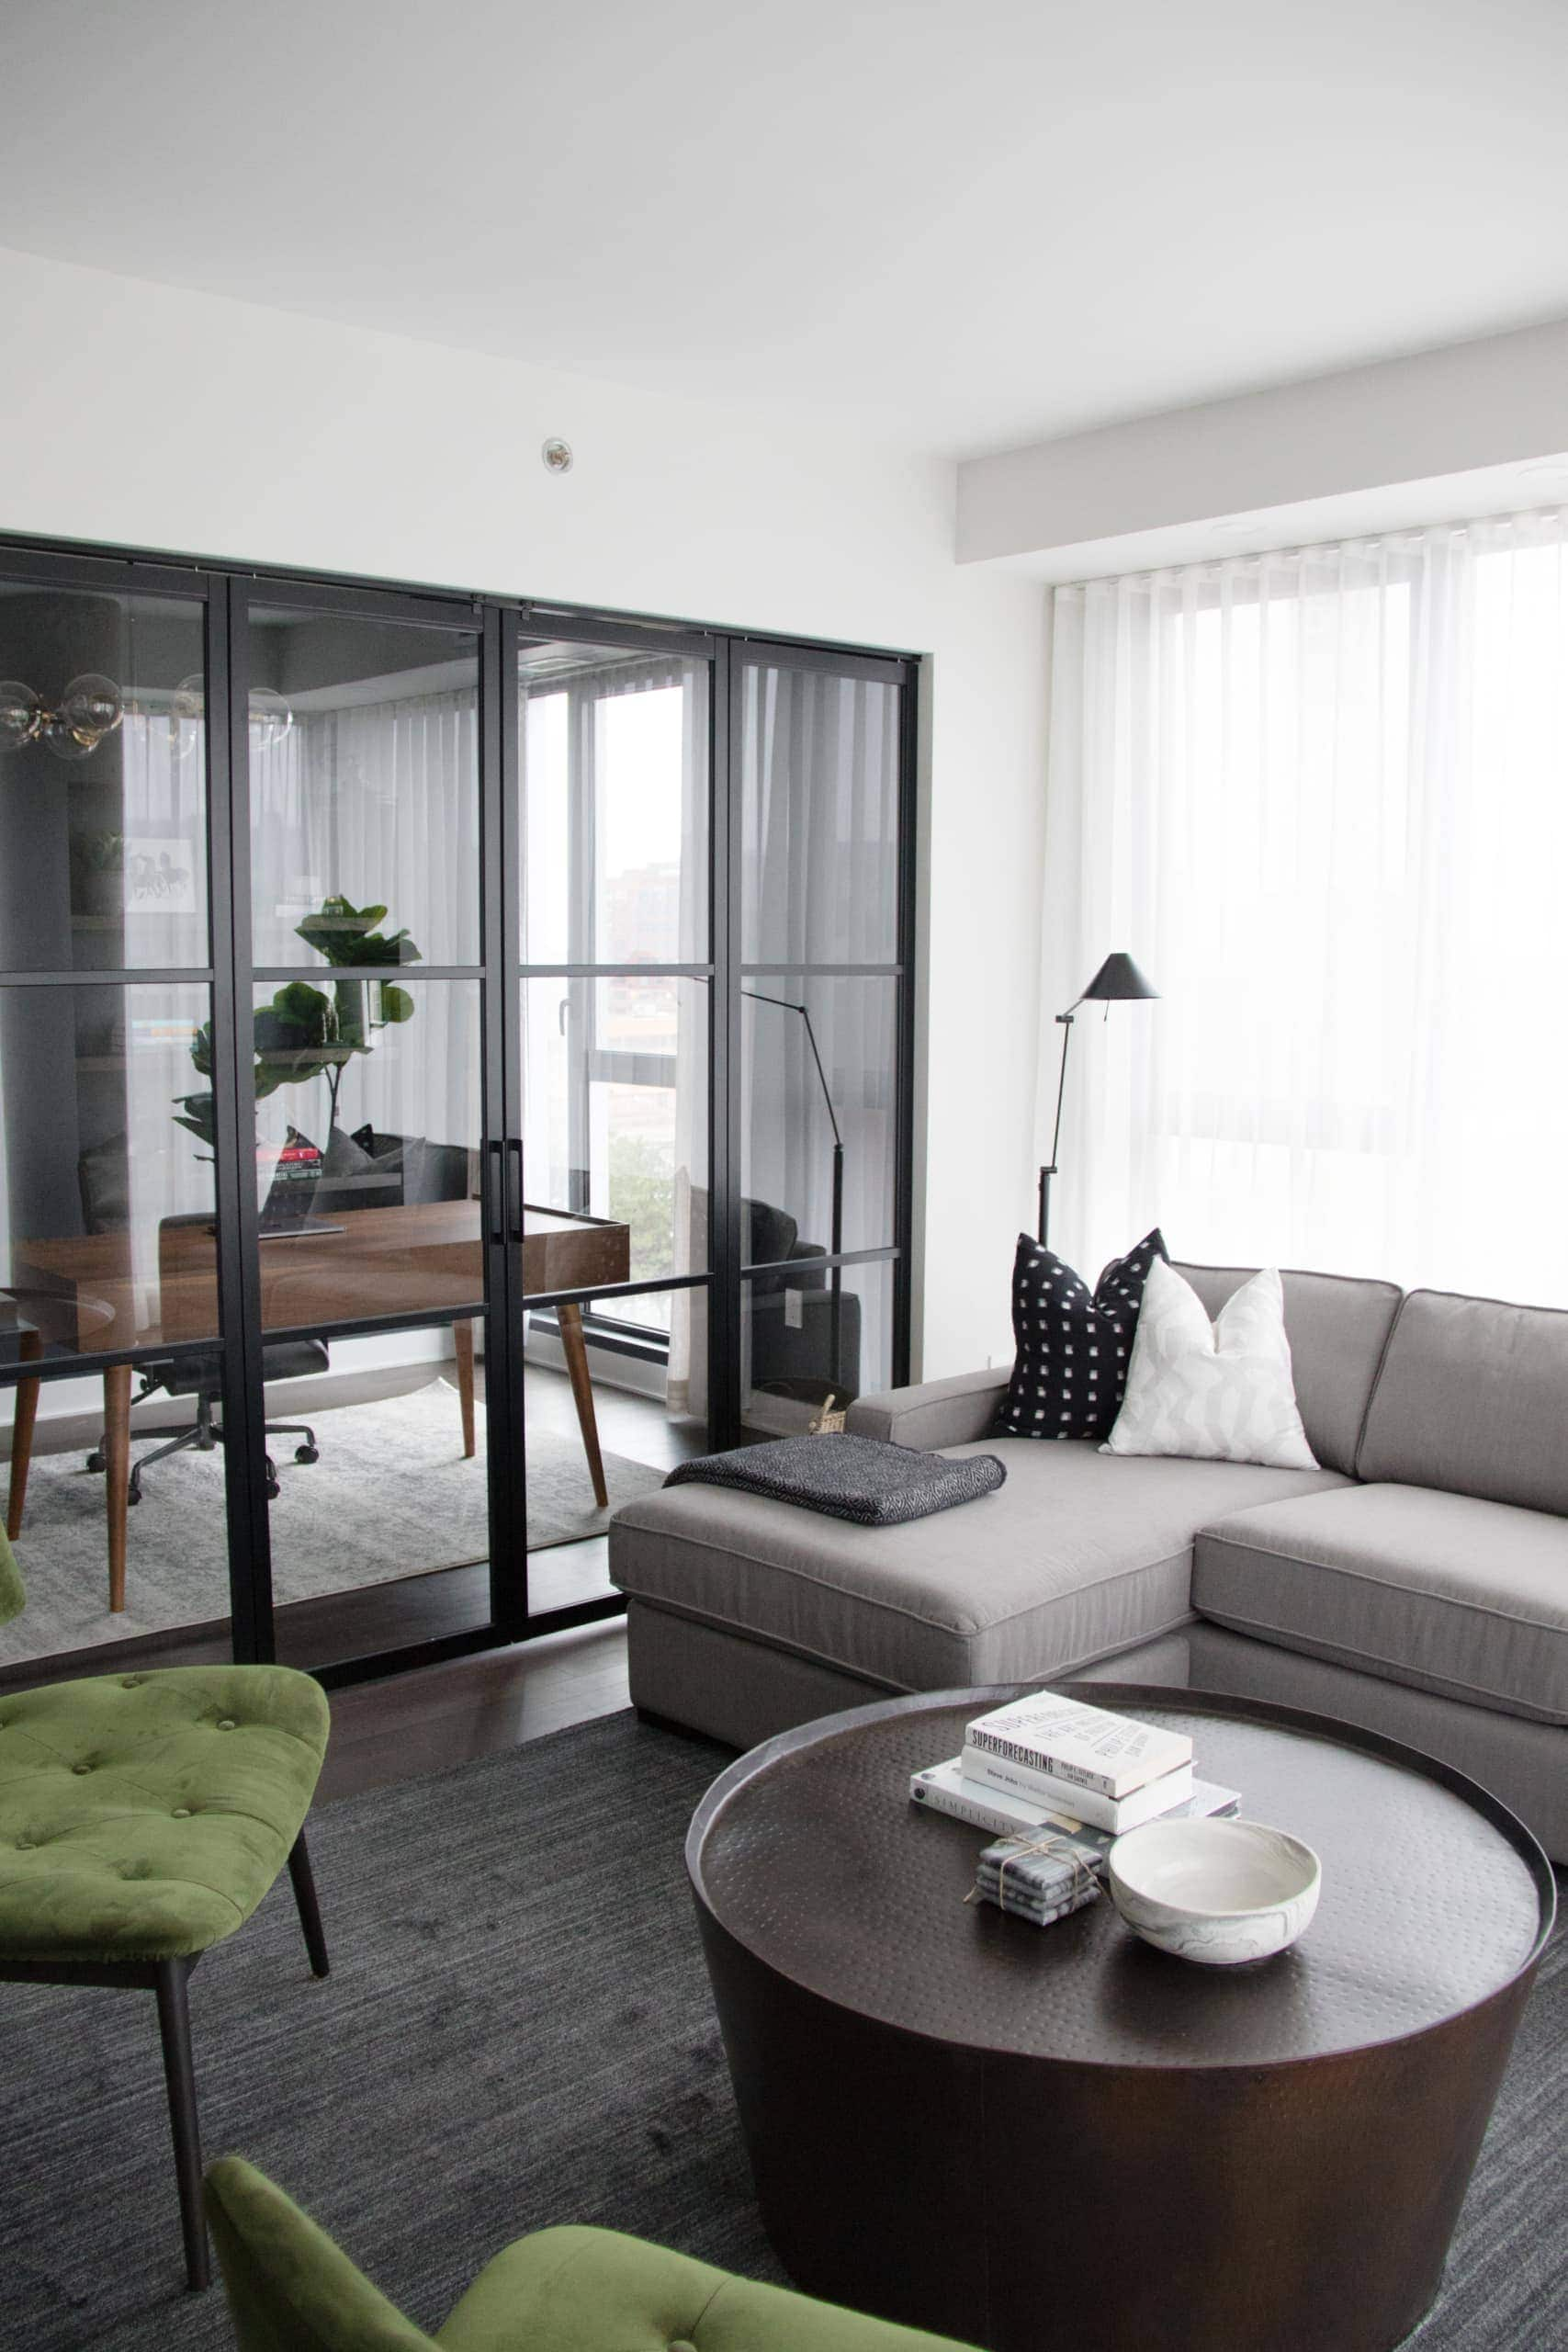 Modern living room with two green chair in the corners